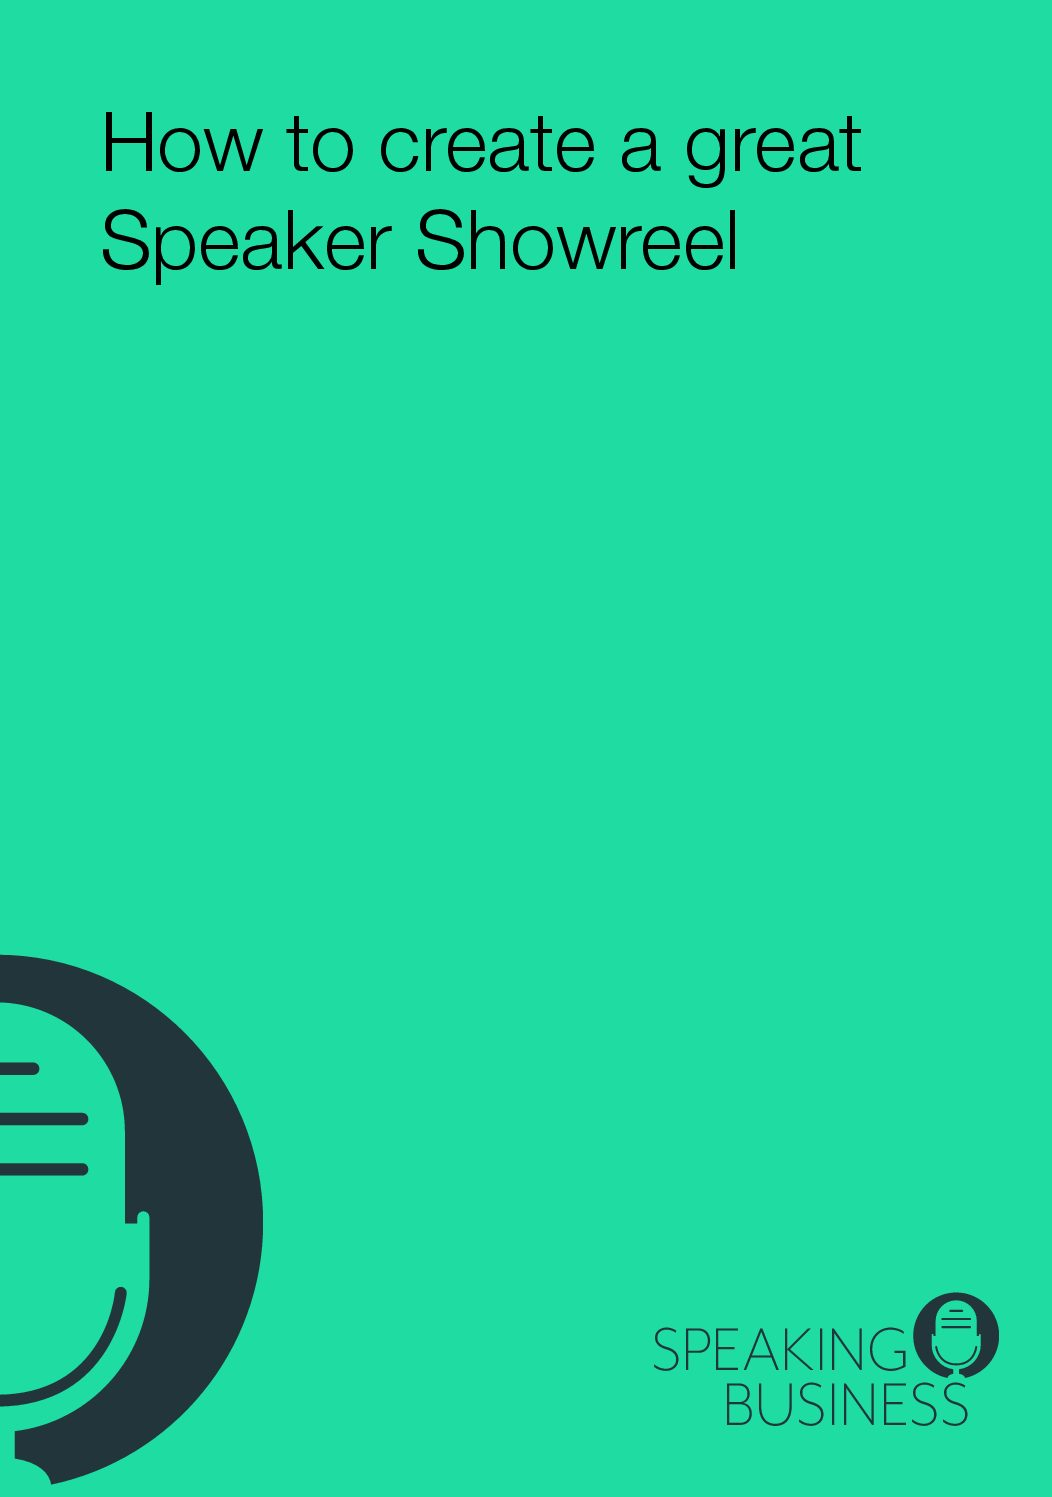 How to create a great Speaker Showreel